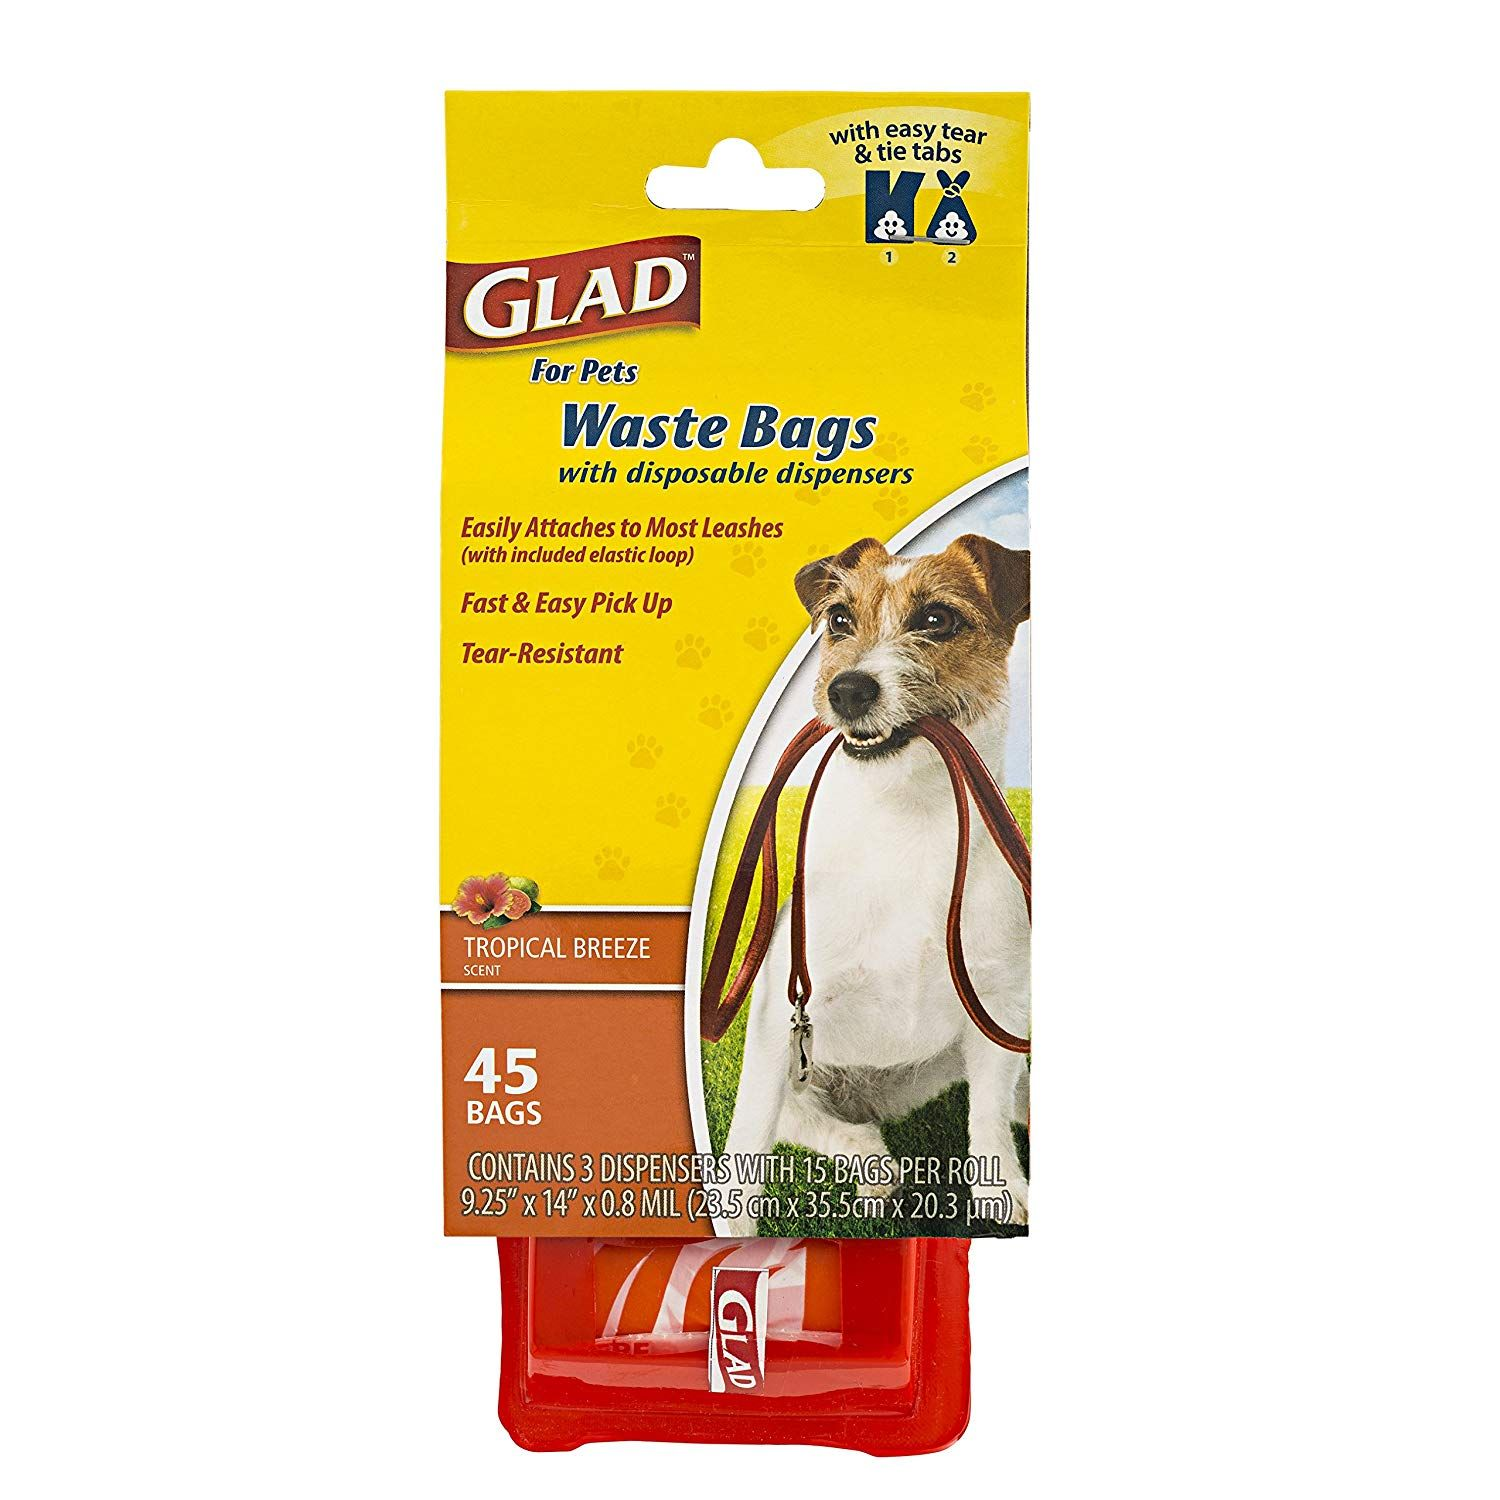 Glad for Pets Extra Large Dog Waste Bags with Disposable